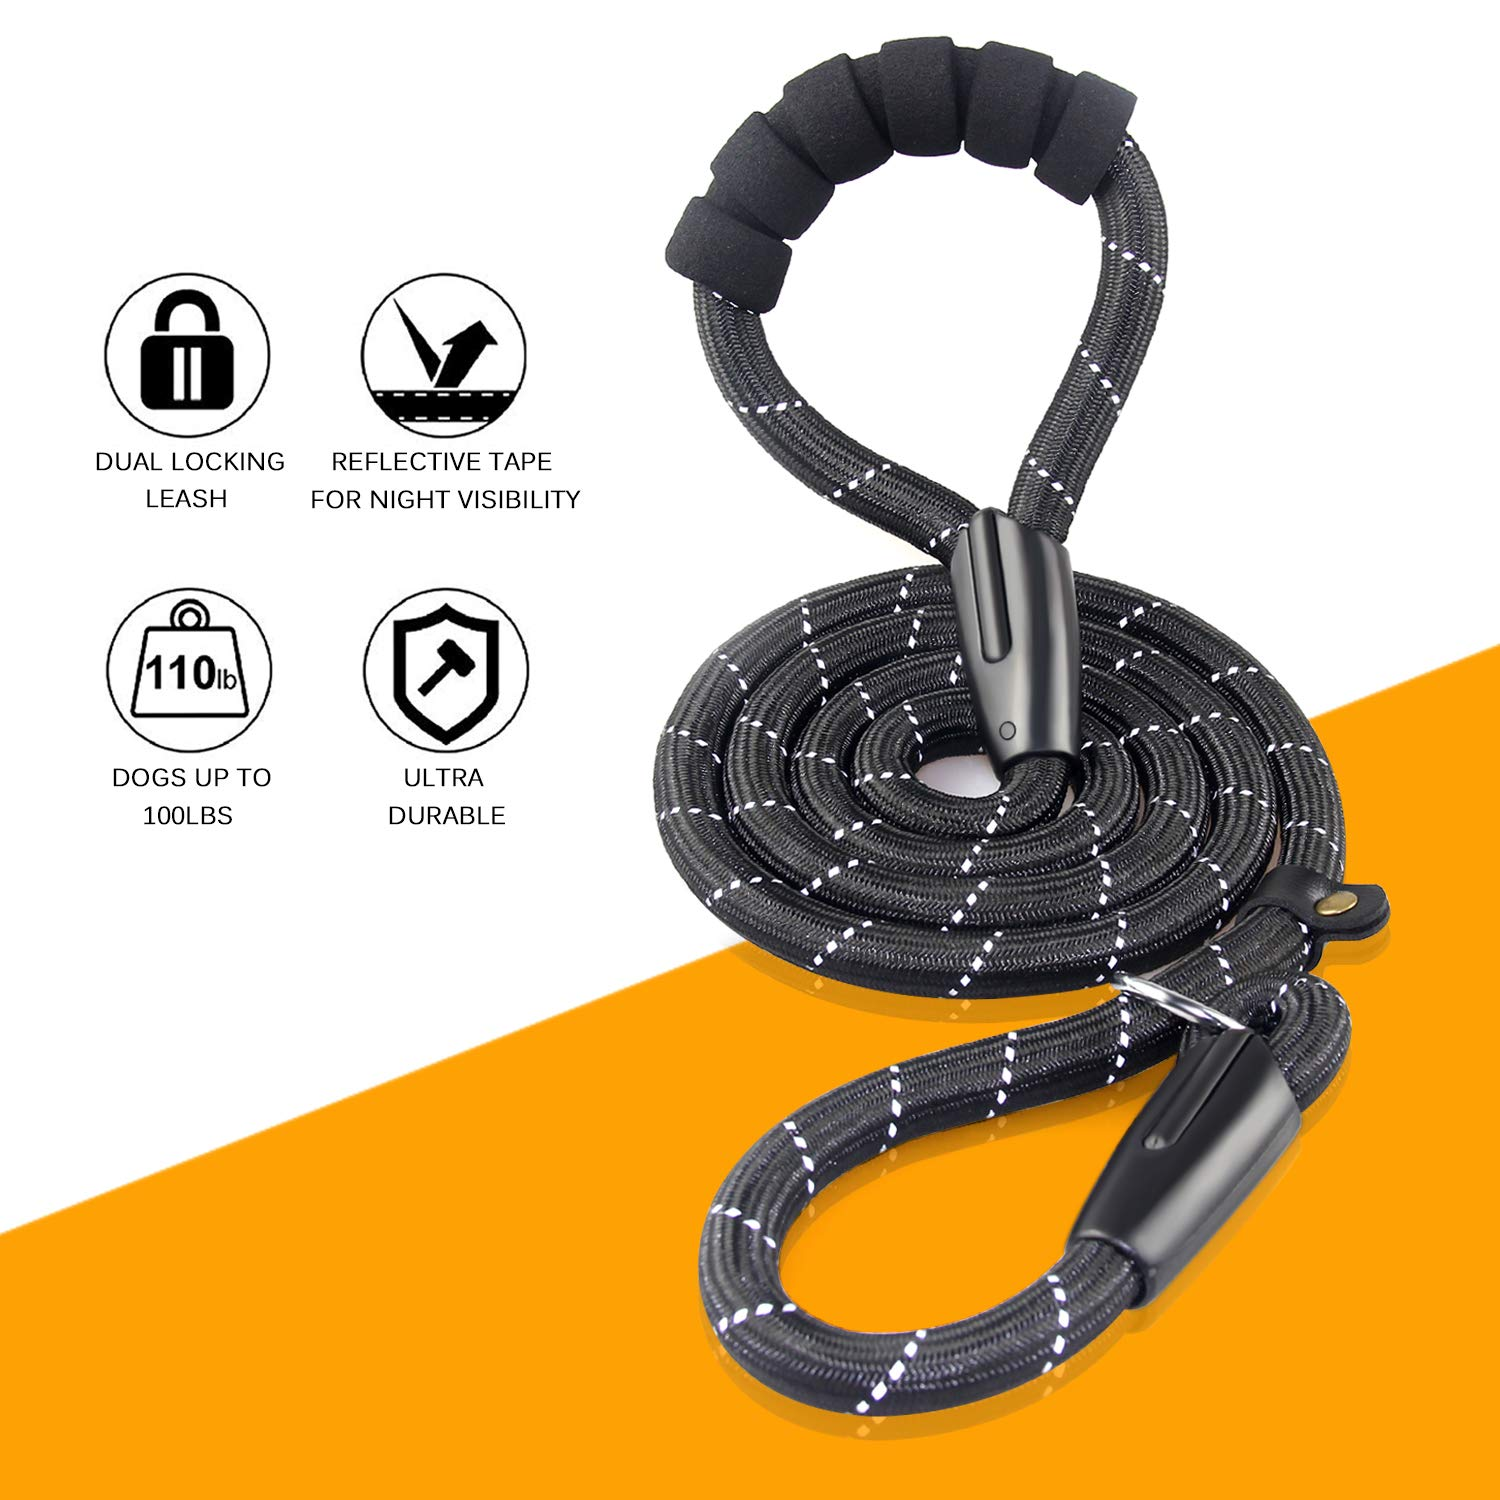 Heavy Duty Dog Leash,Durable Mountain Climbing Slip Lead Dog Leash with Soft Padded Handle, 6 Ft Reflective Rope Leash Perfect for Control of Medium Large Dog Walking Running at Night by Fashion&cool